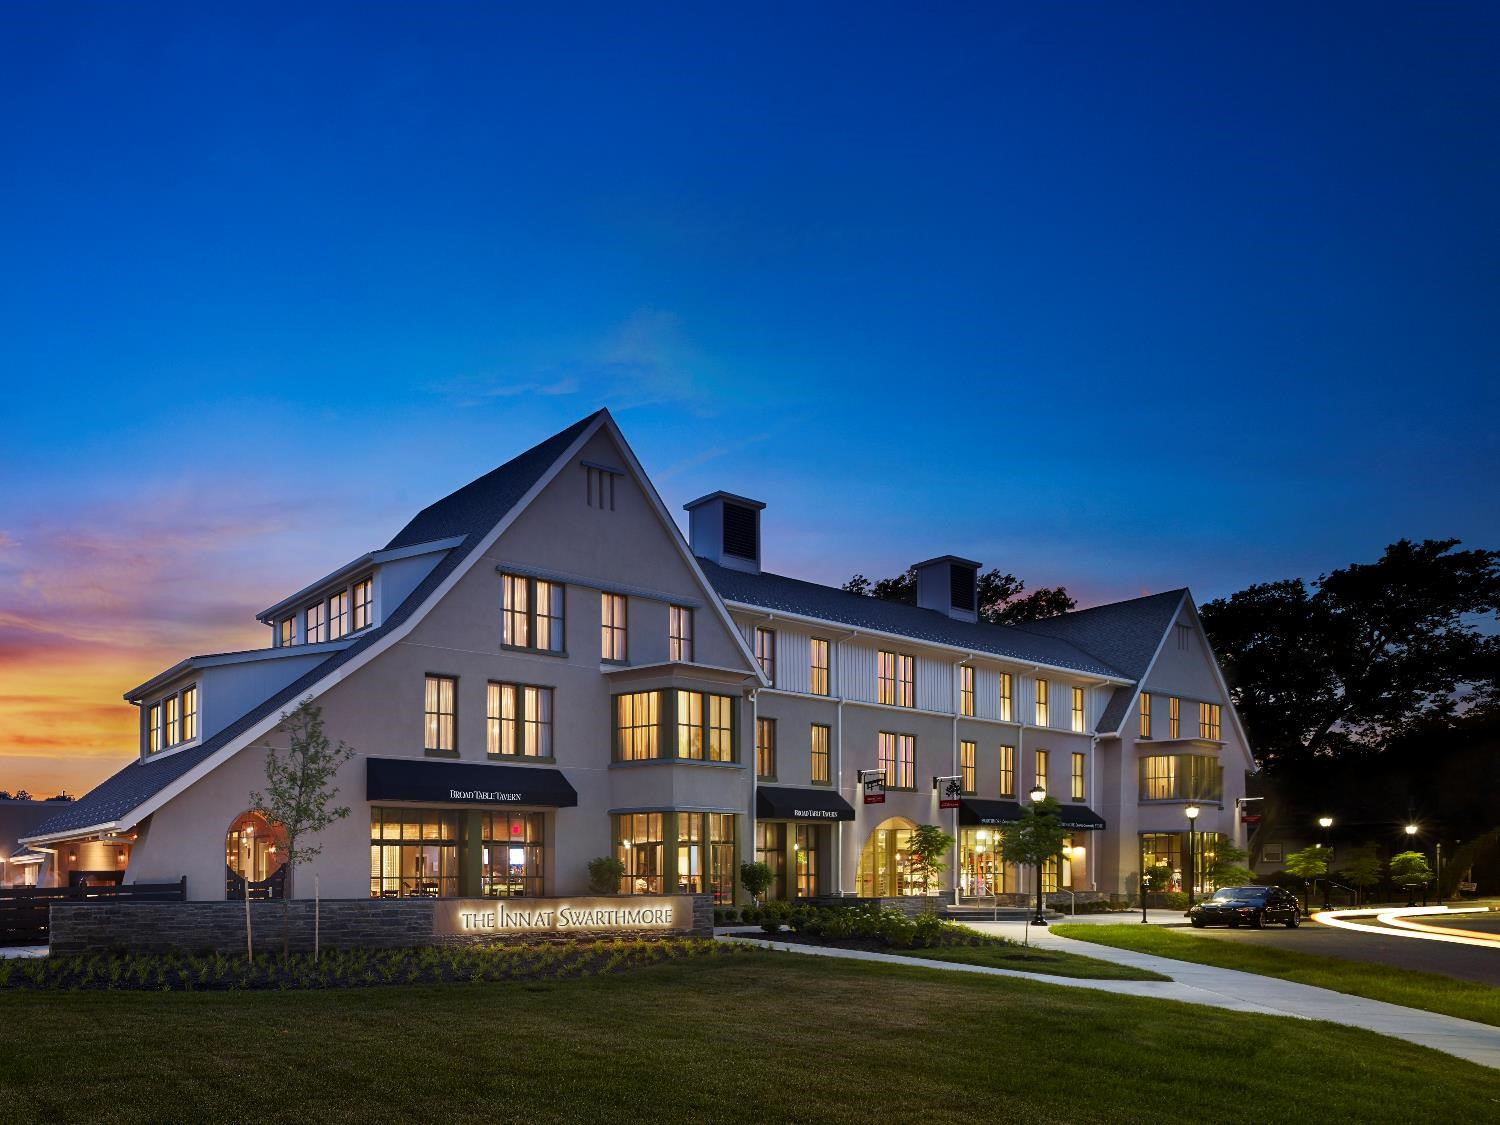 Inn at Swarthmore On campus So convenient Touch of elegance